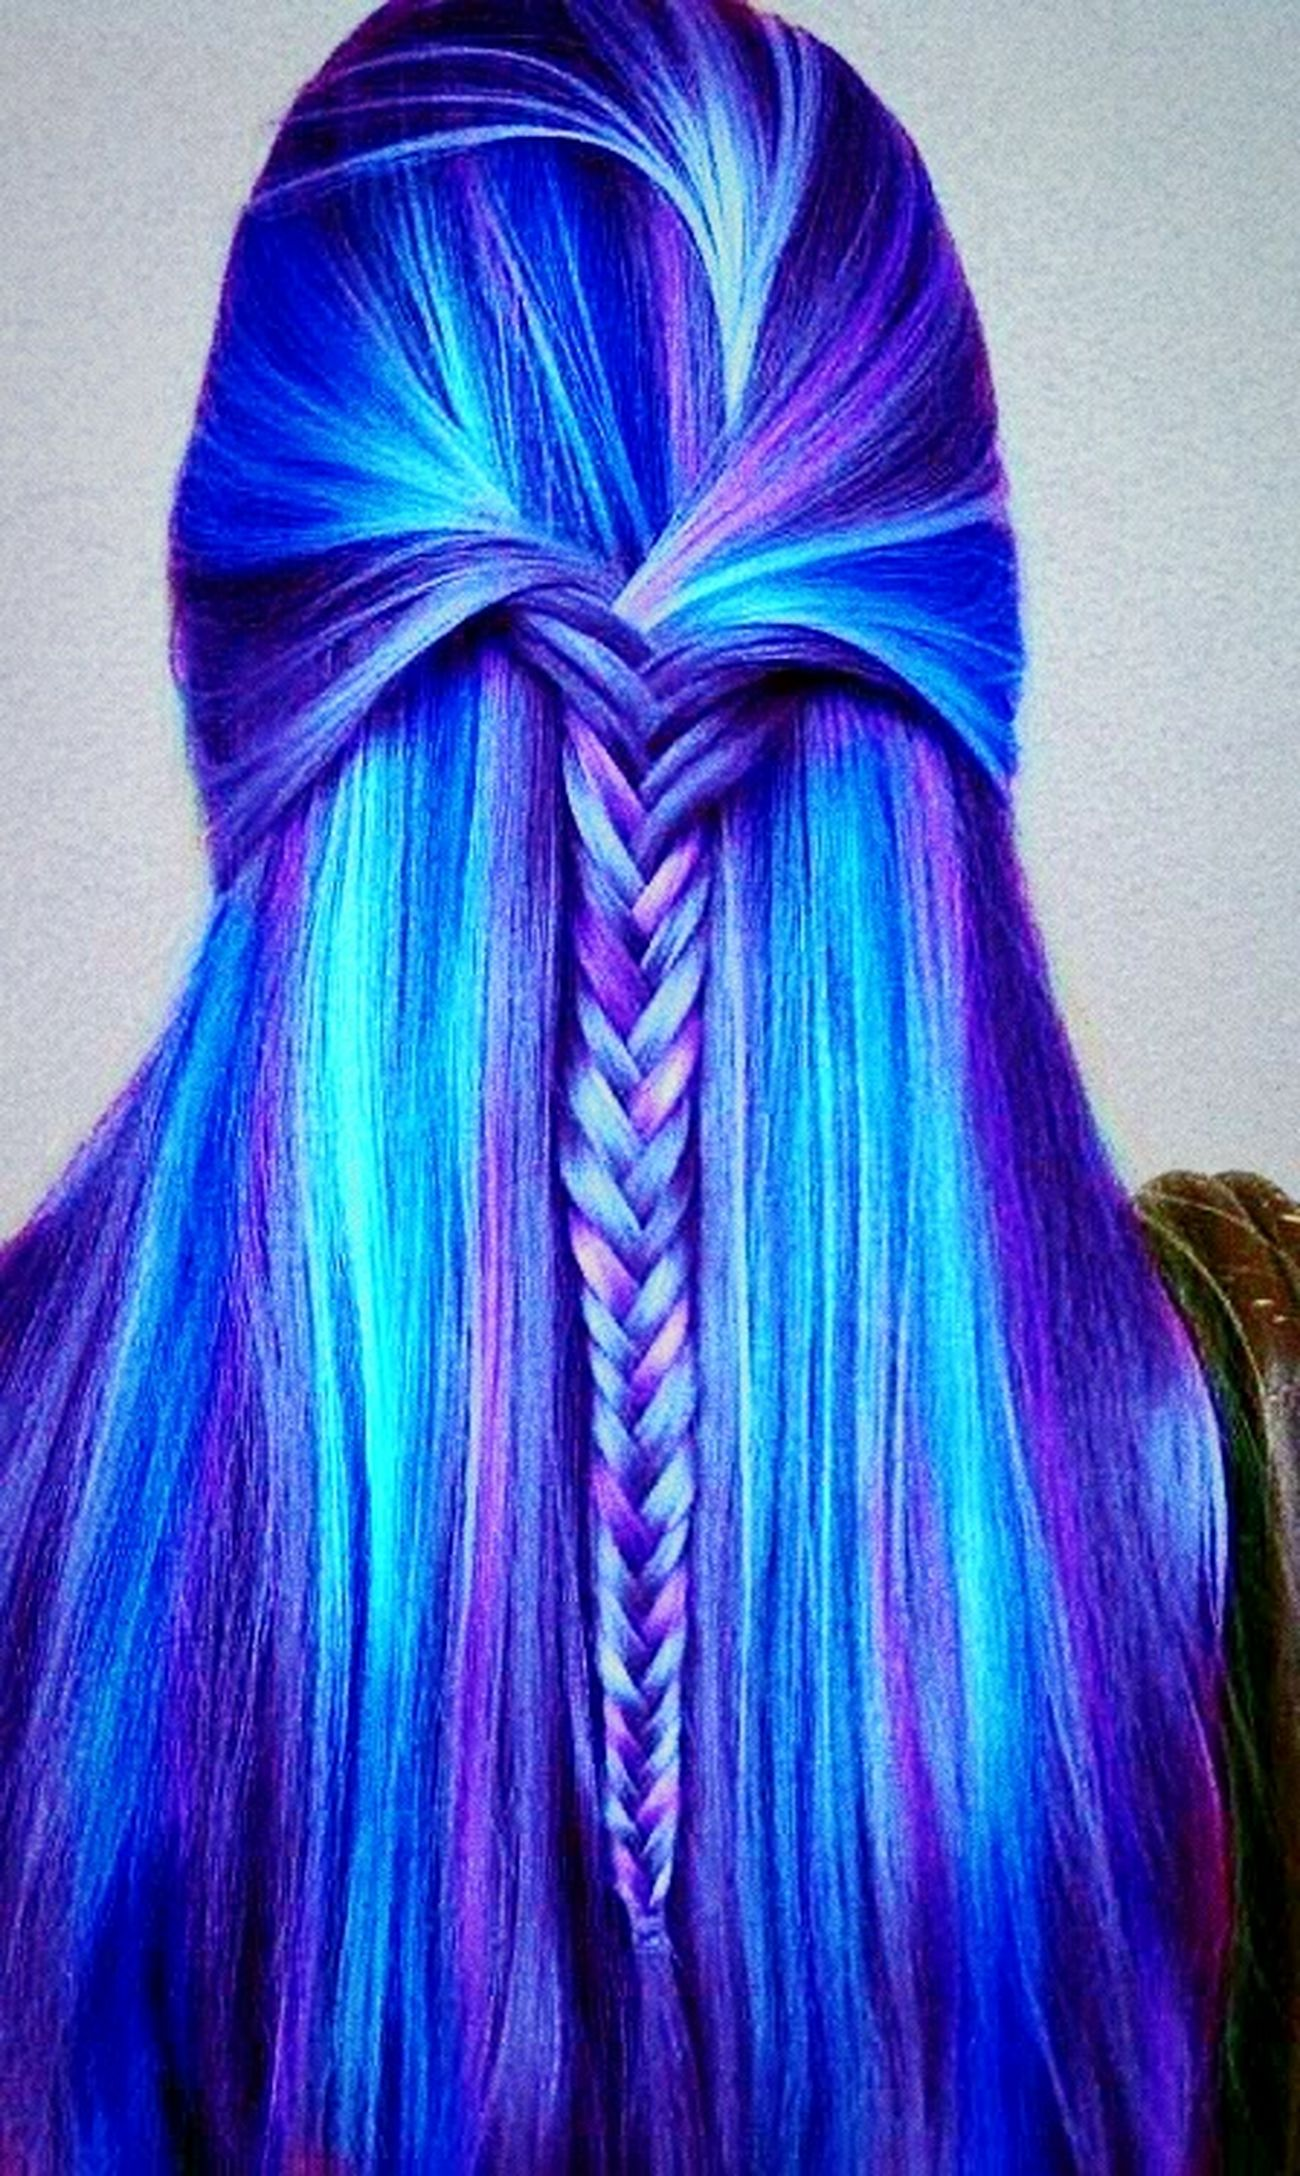 I just wanted to have MY hair like this! Colorful! But I don't have :( Sadforever